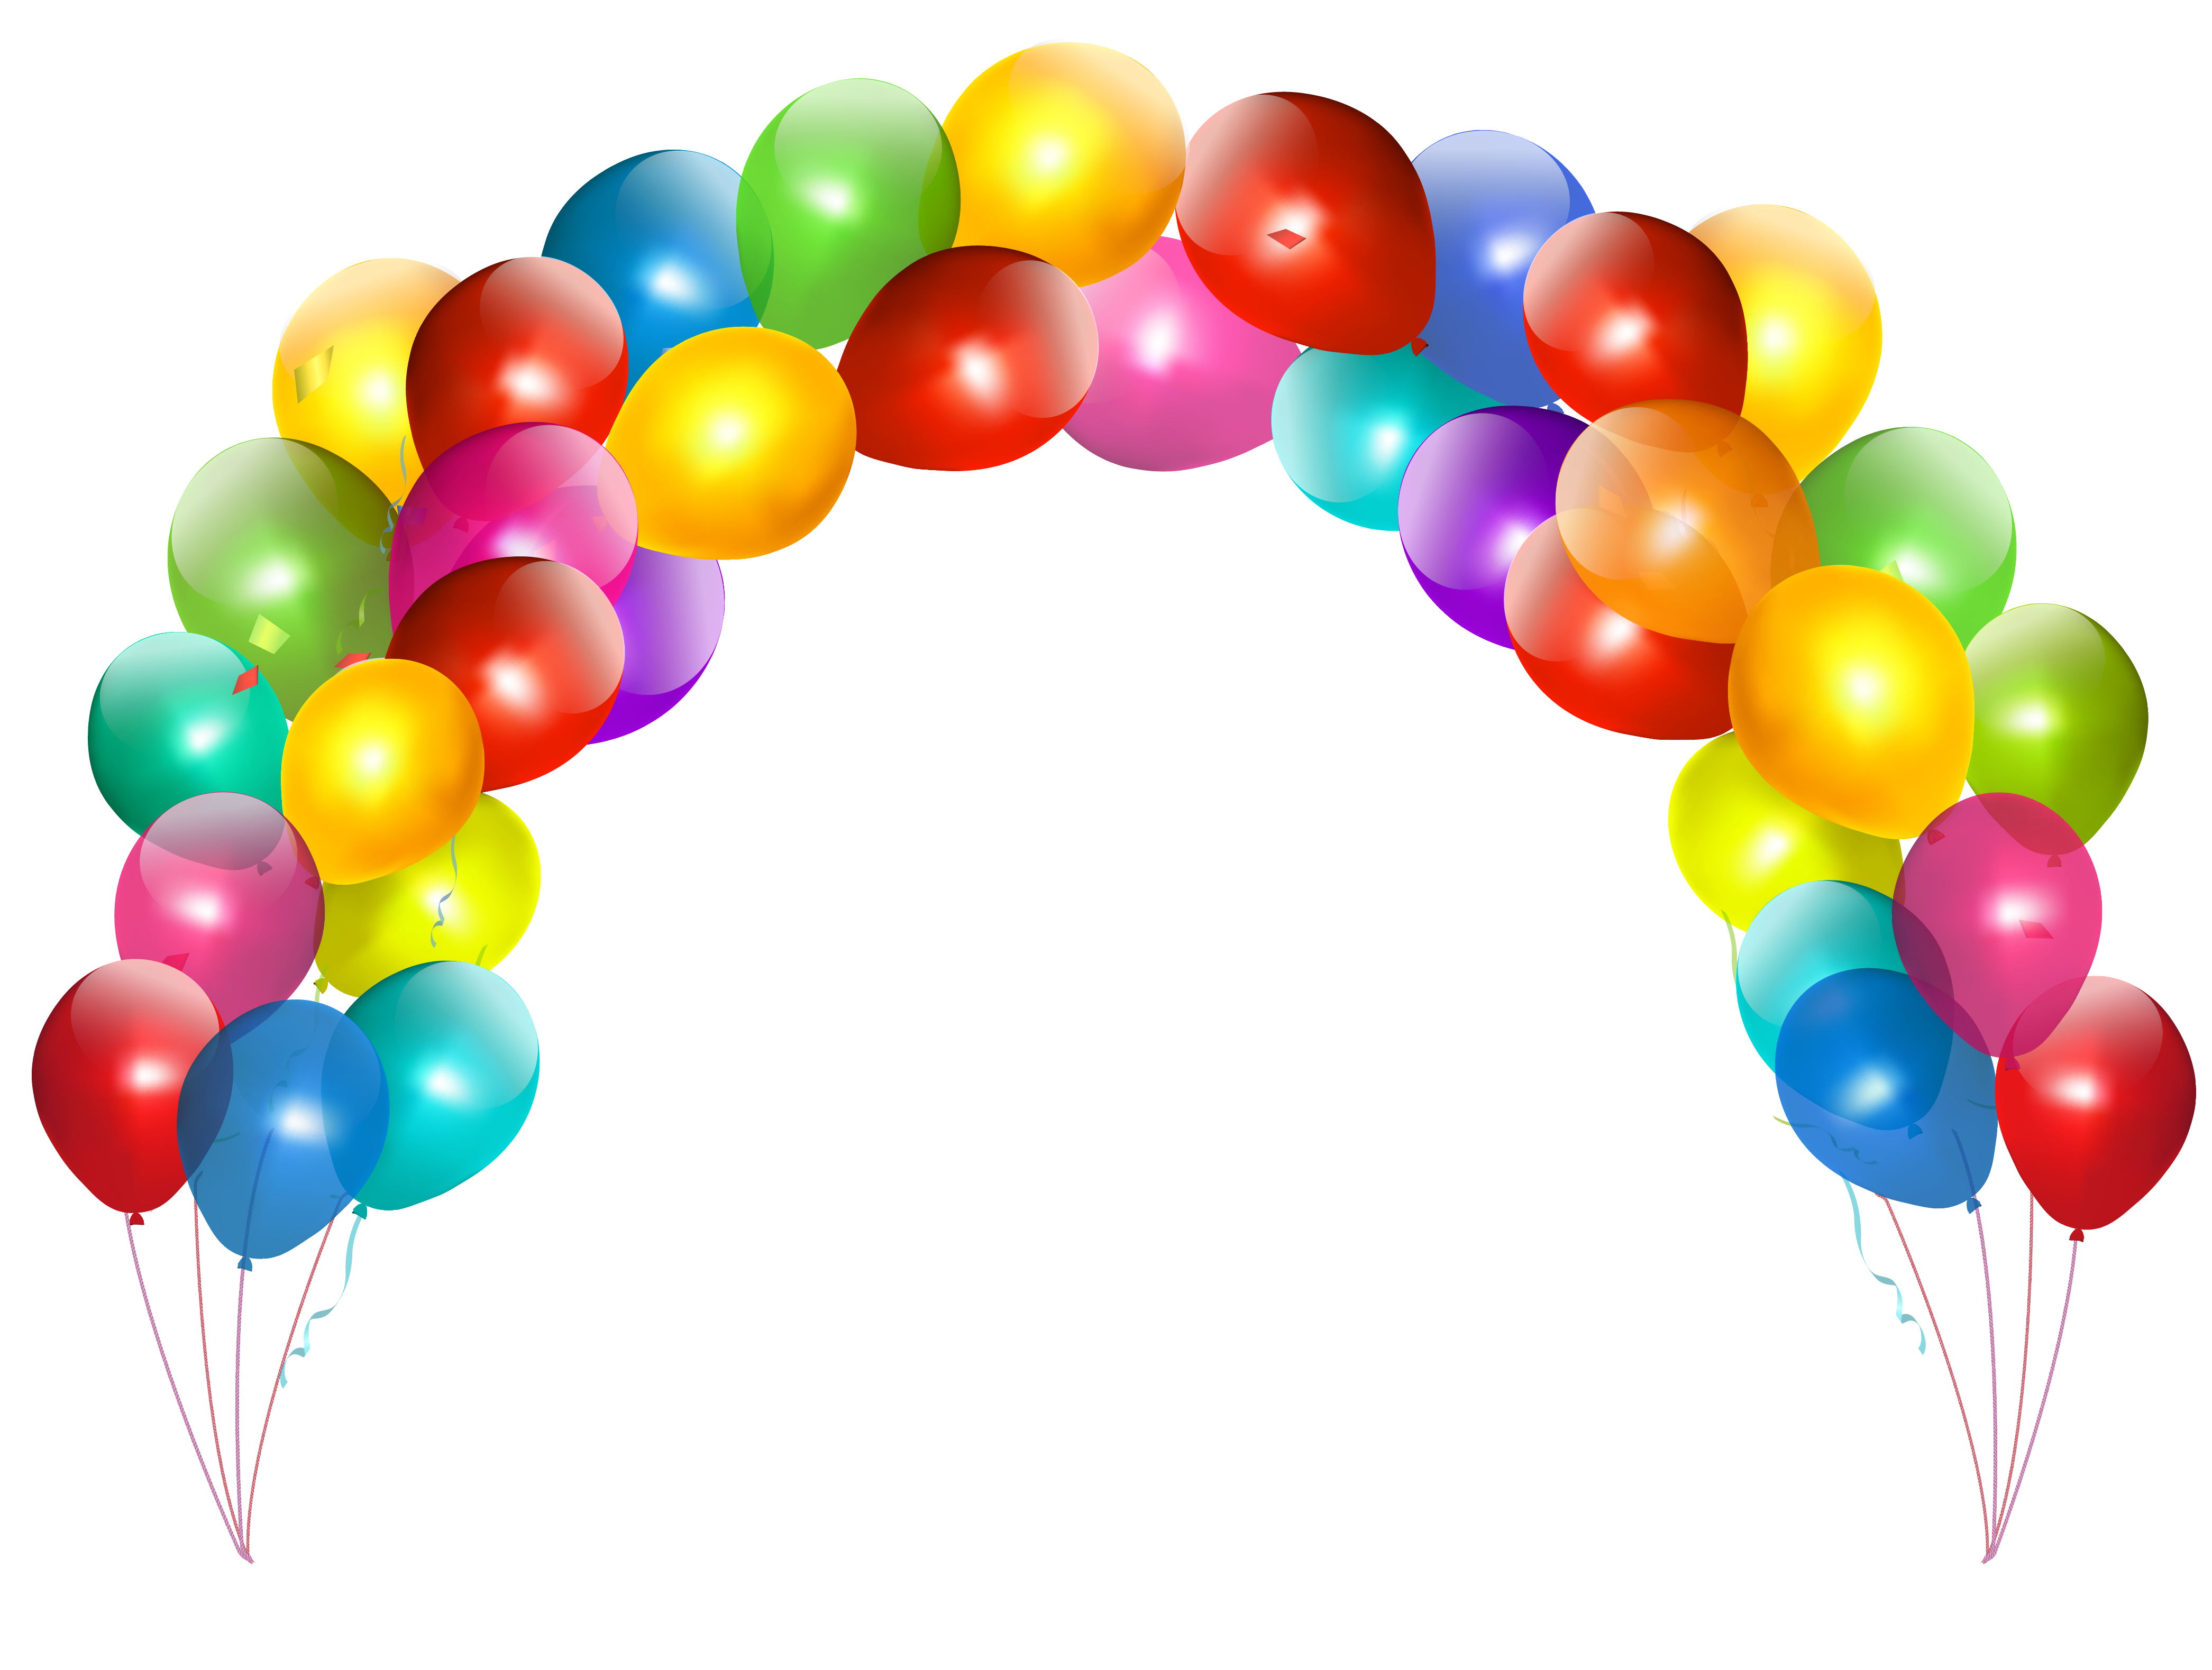 Happy birthday banner background png. Balloon arch clipart all